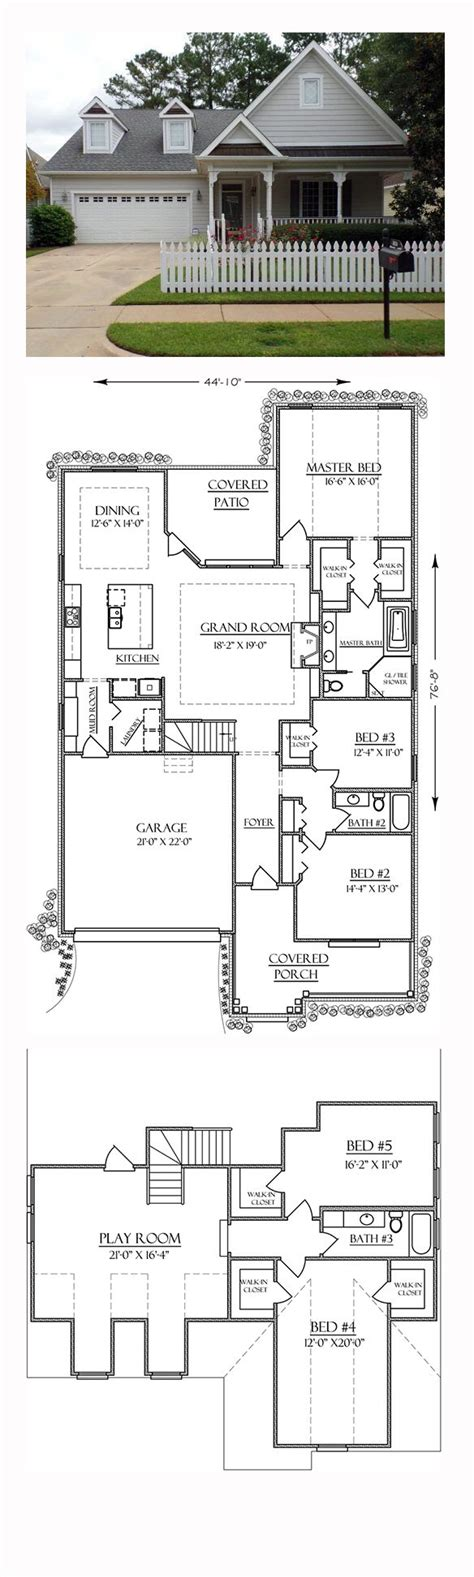 5 bedroom home best 25 5 bedroom house plans ideas on 4